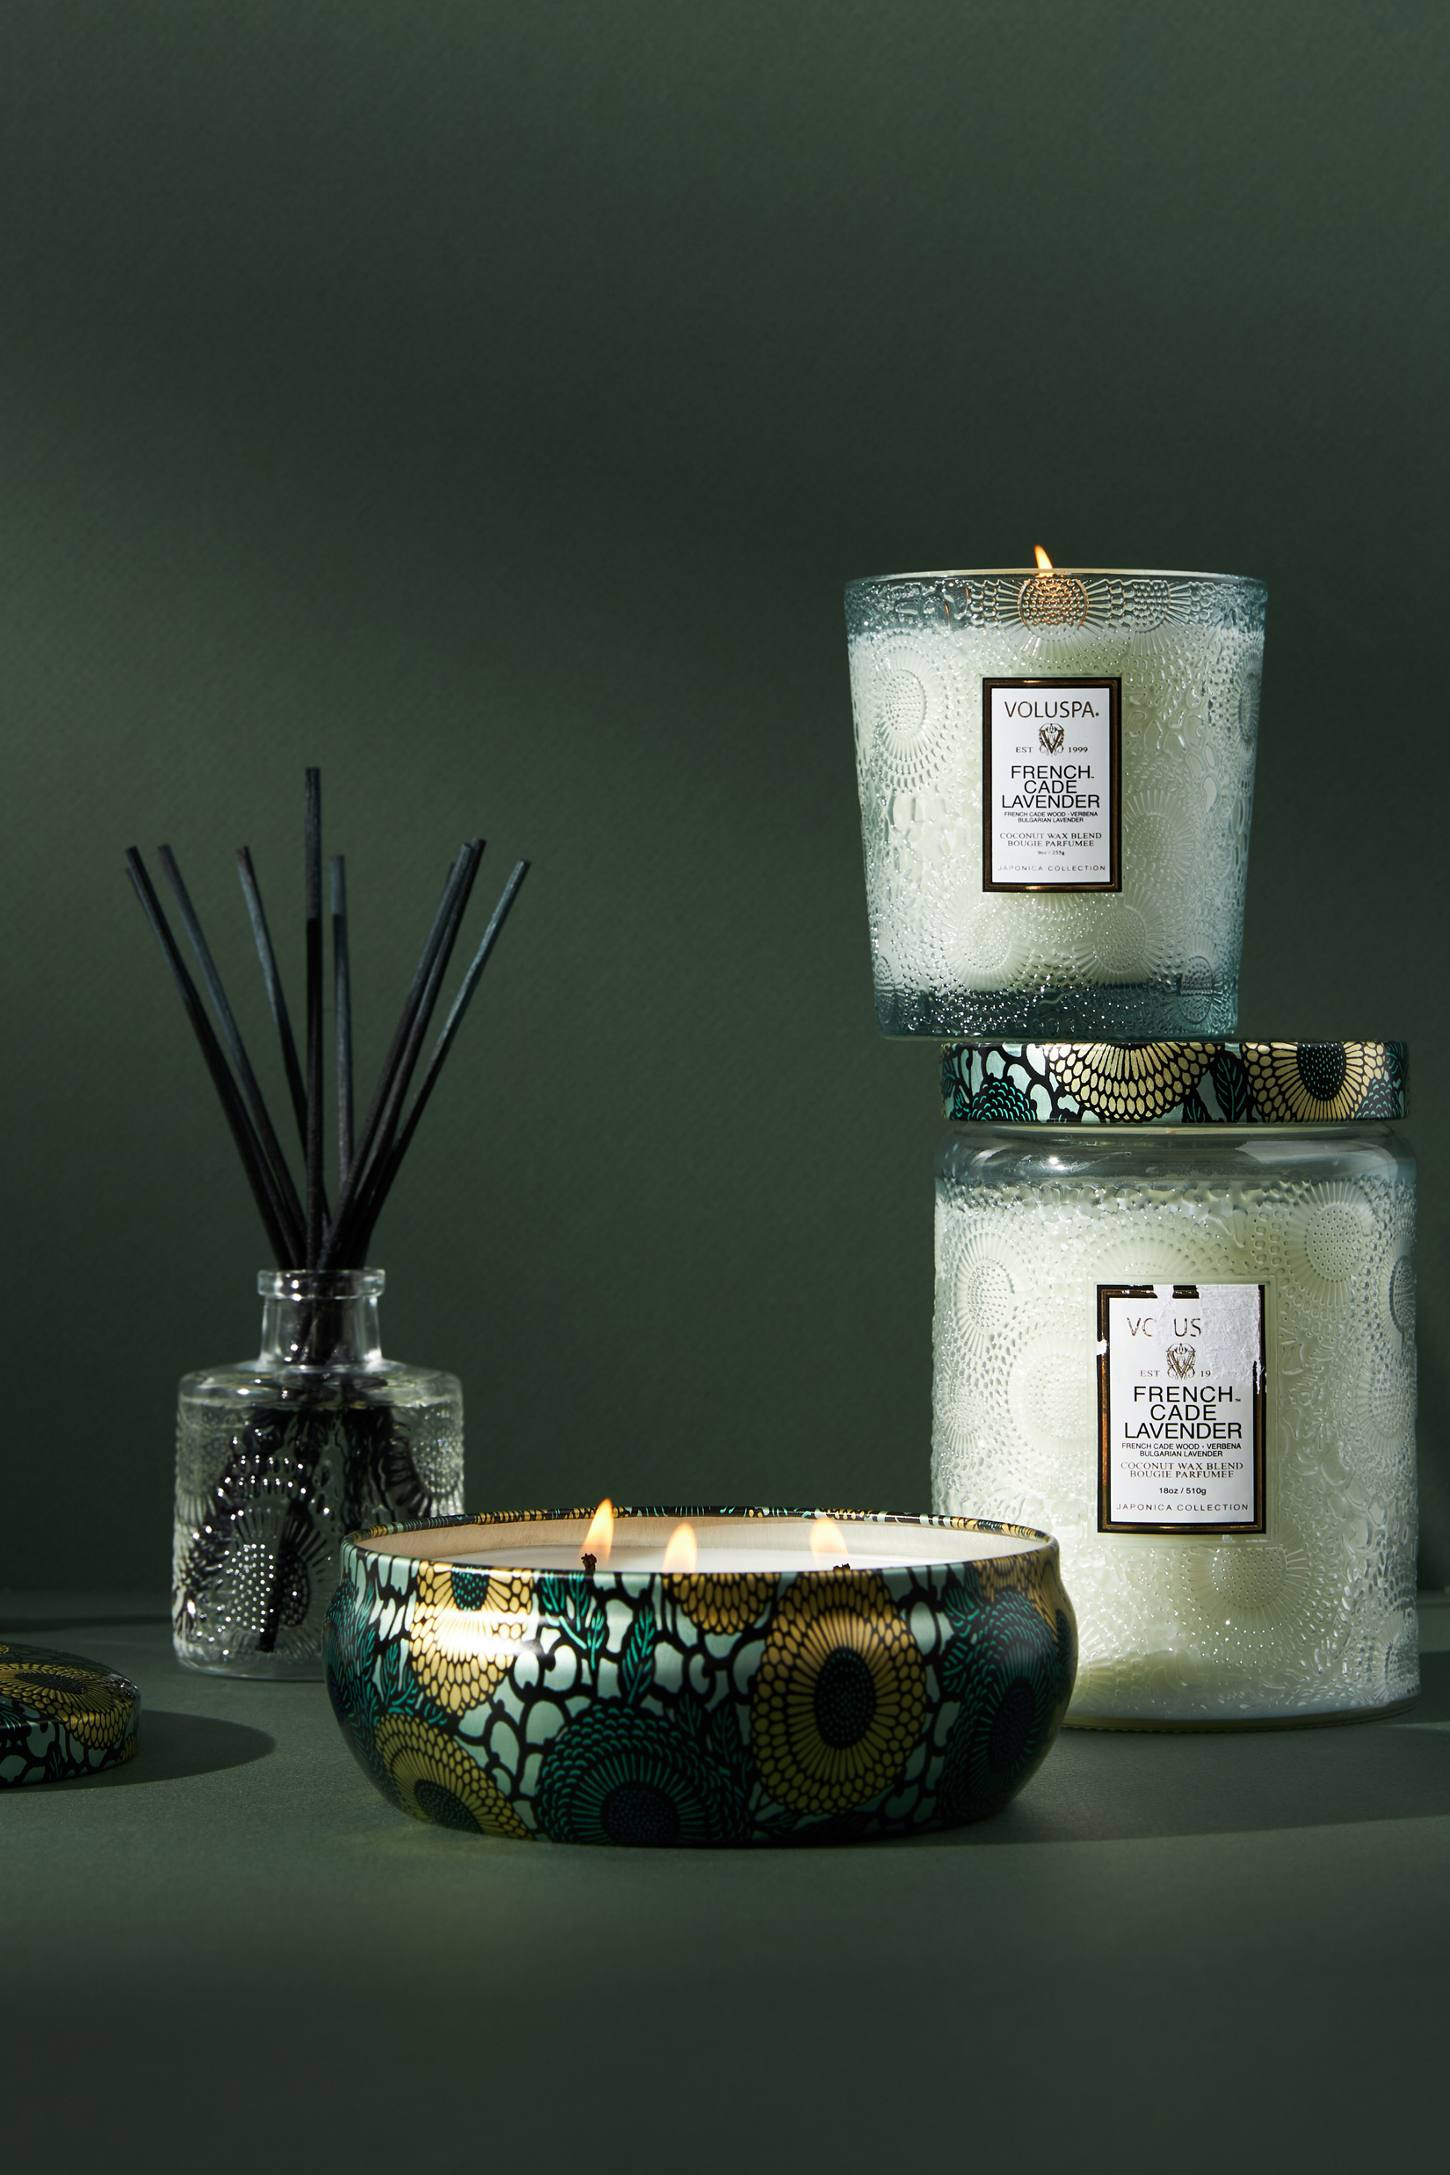 Limited Edition Voluspa Cut Glass Jar Candle